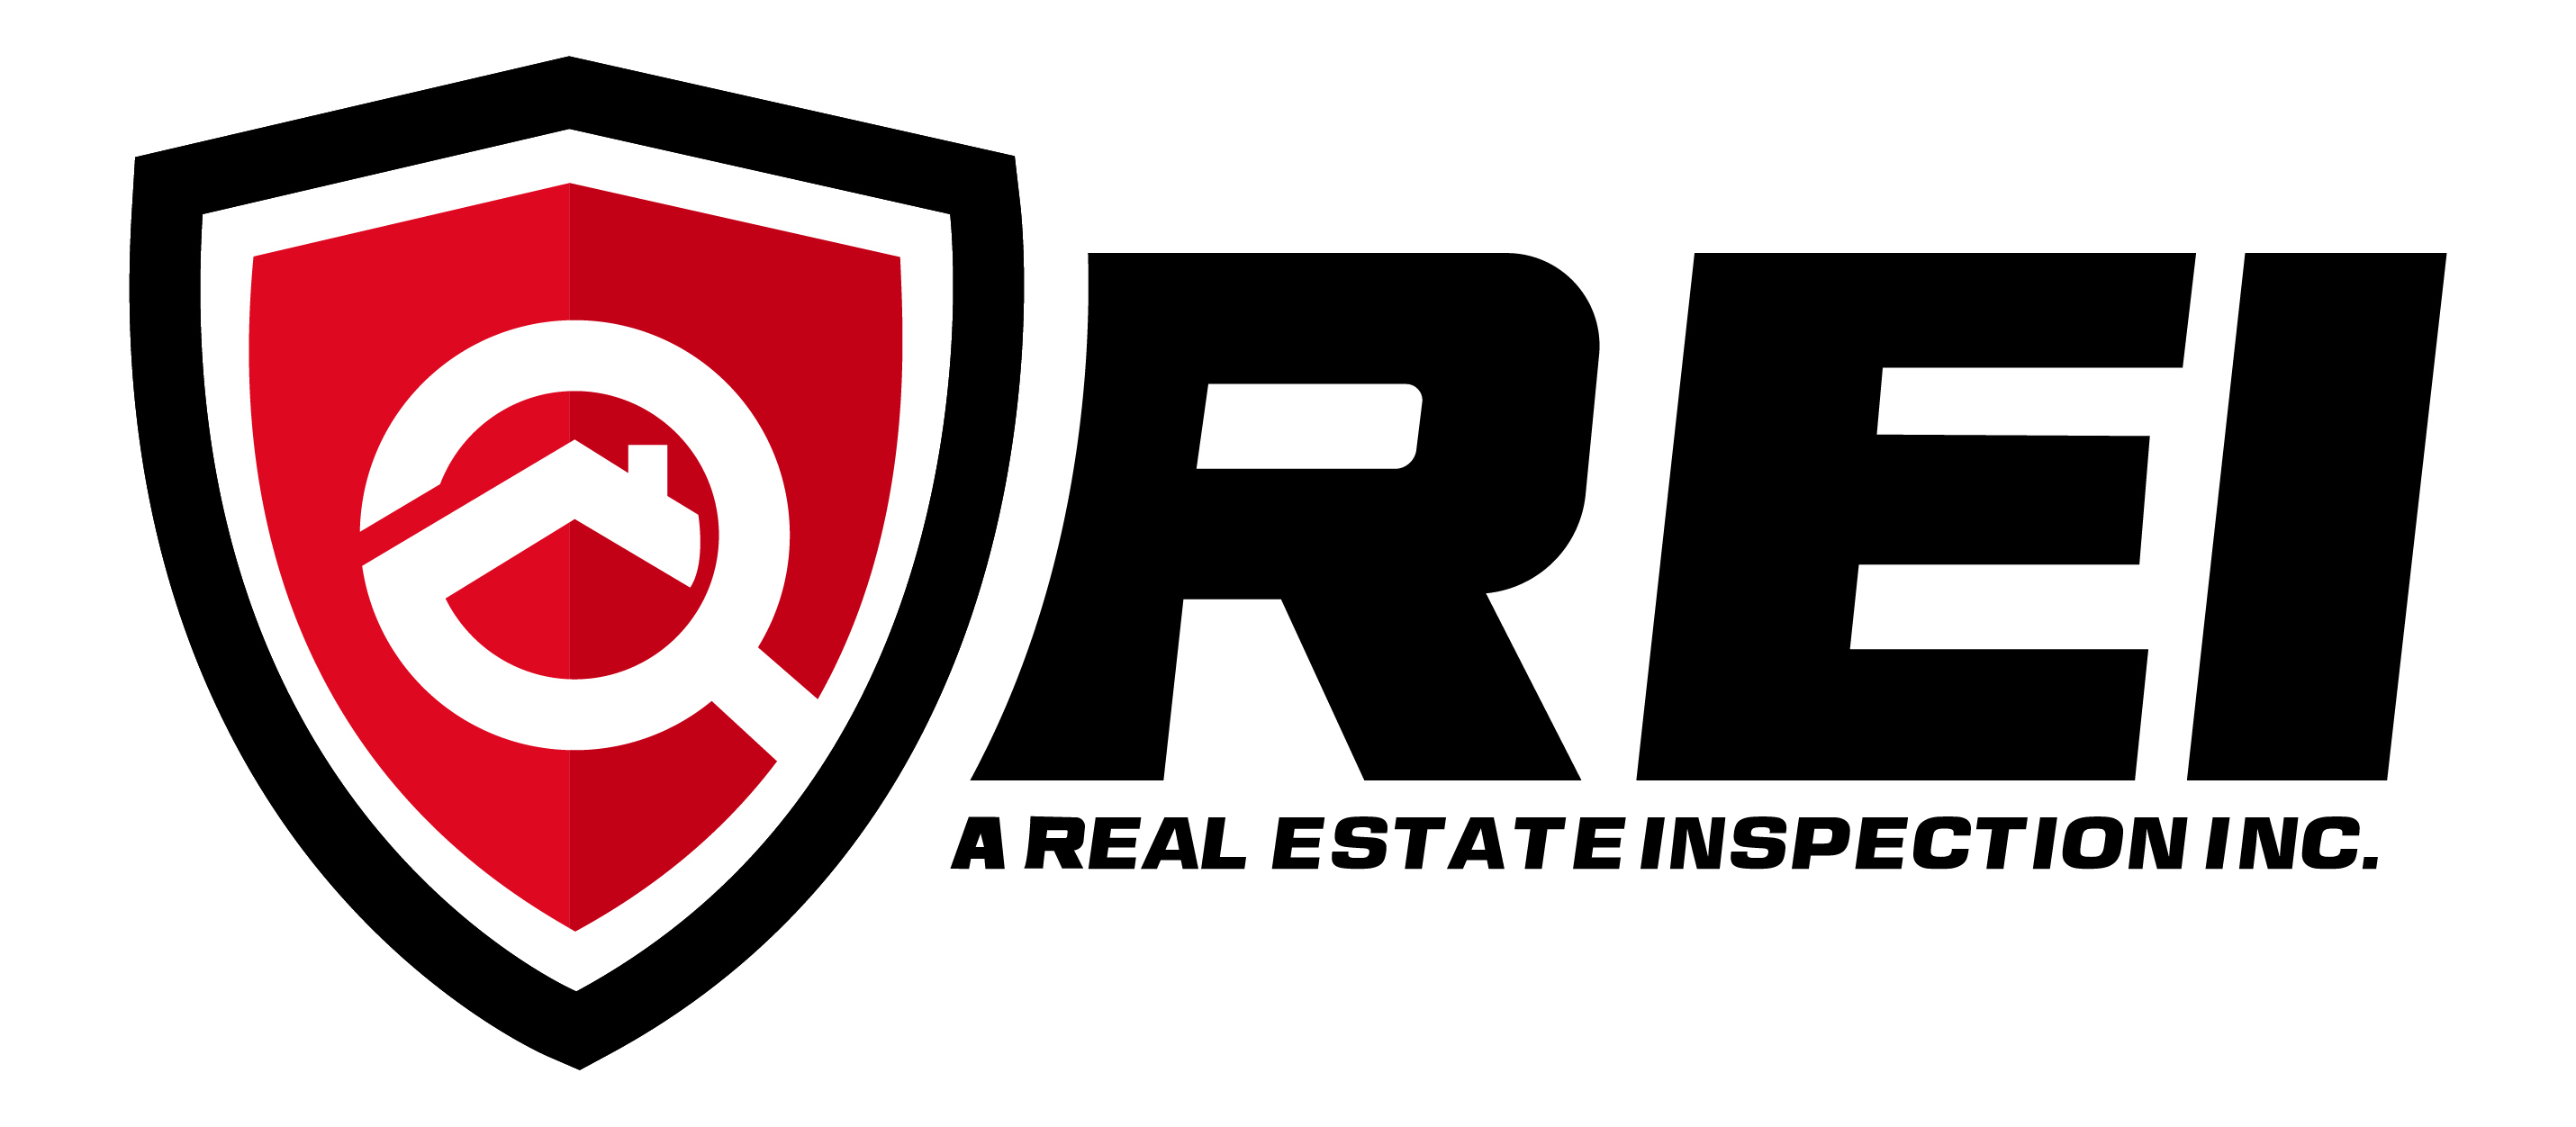 Rei   real estate inspection2   black red